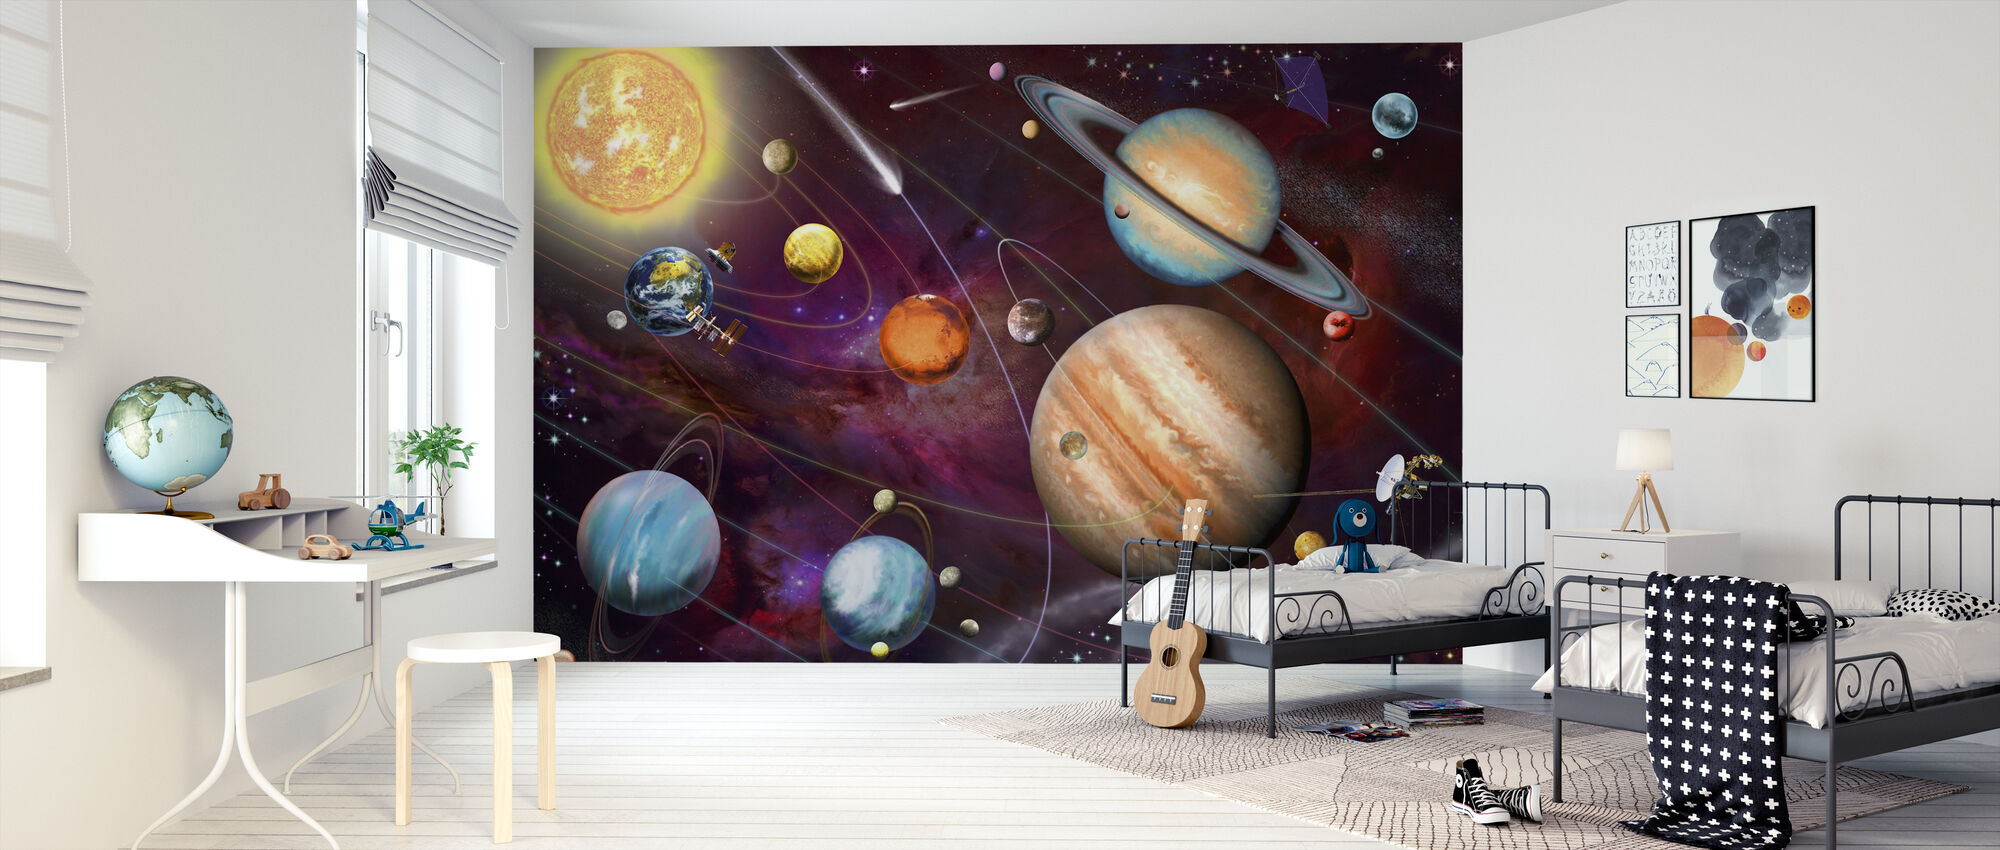 Solar System 2 - Wallpaper - Kids Room